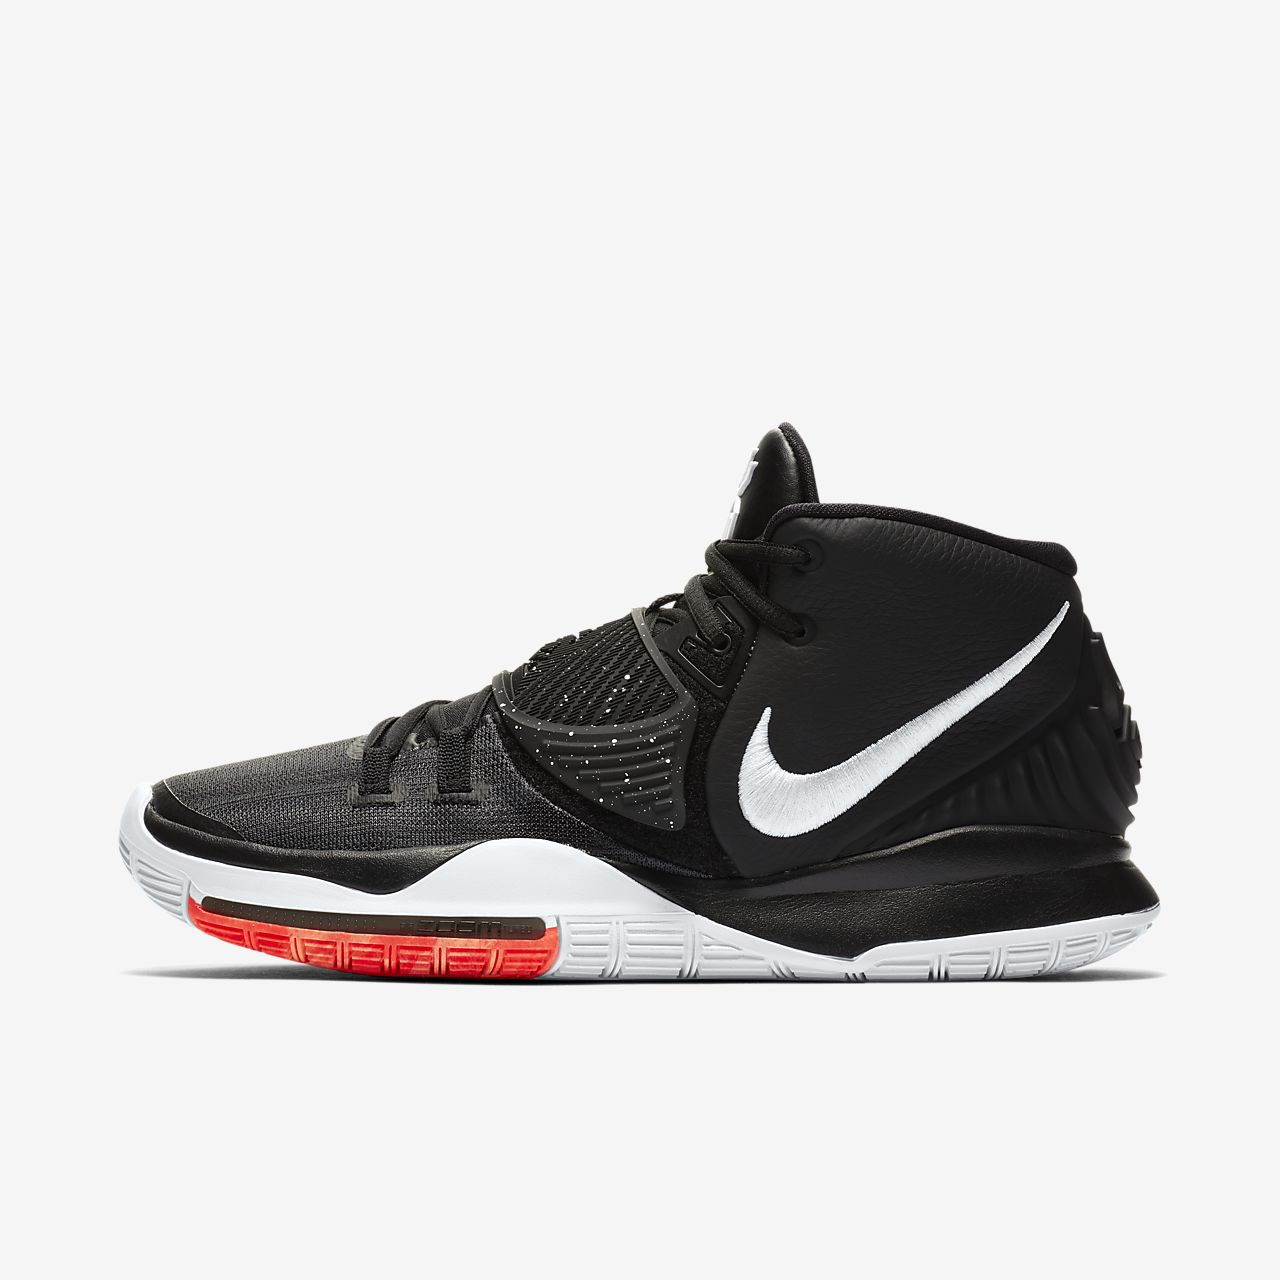 stable quality cheap for sale the sale of shoes Kyrie 6 Basketball Shoe